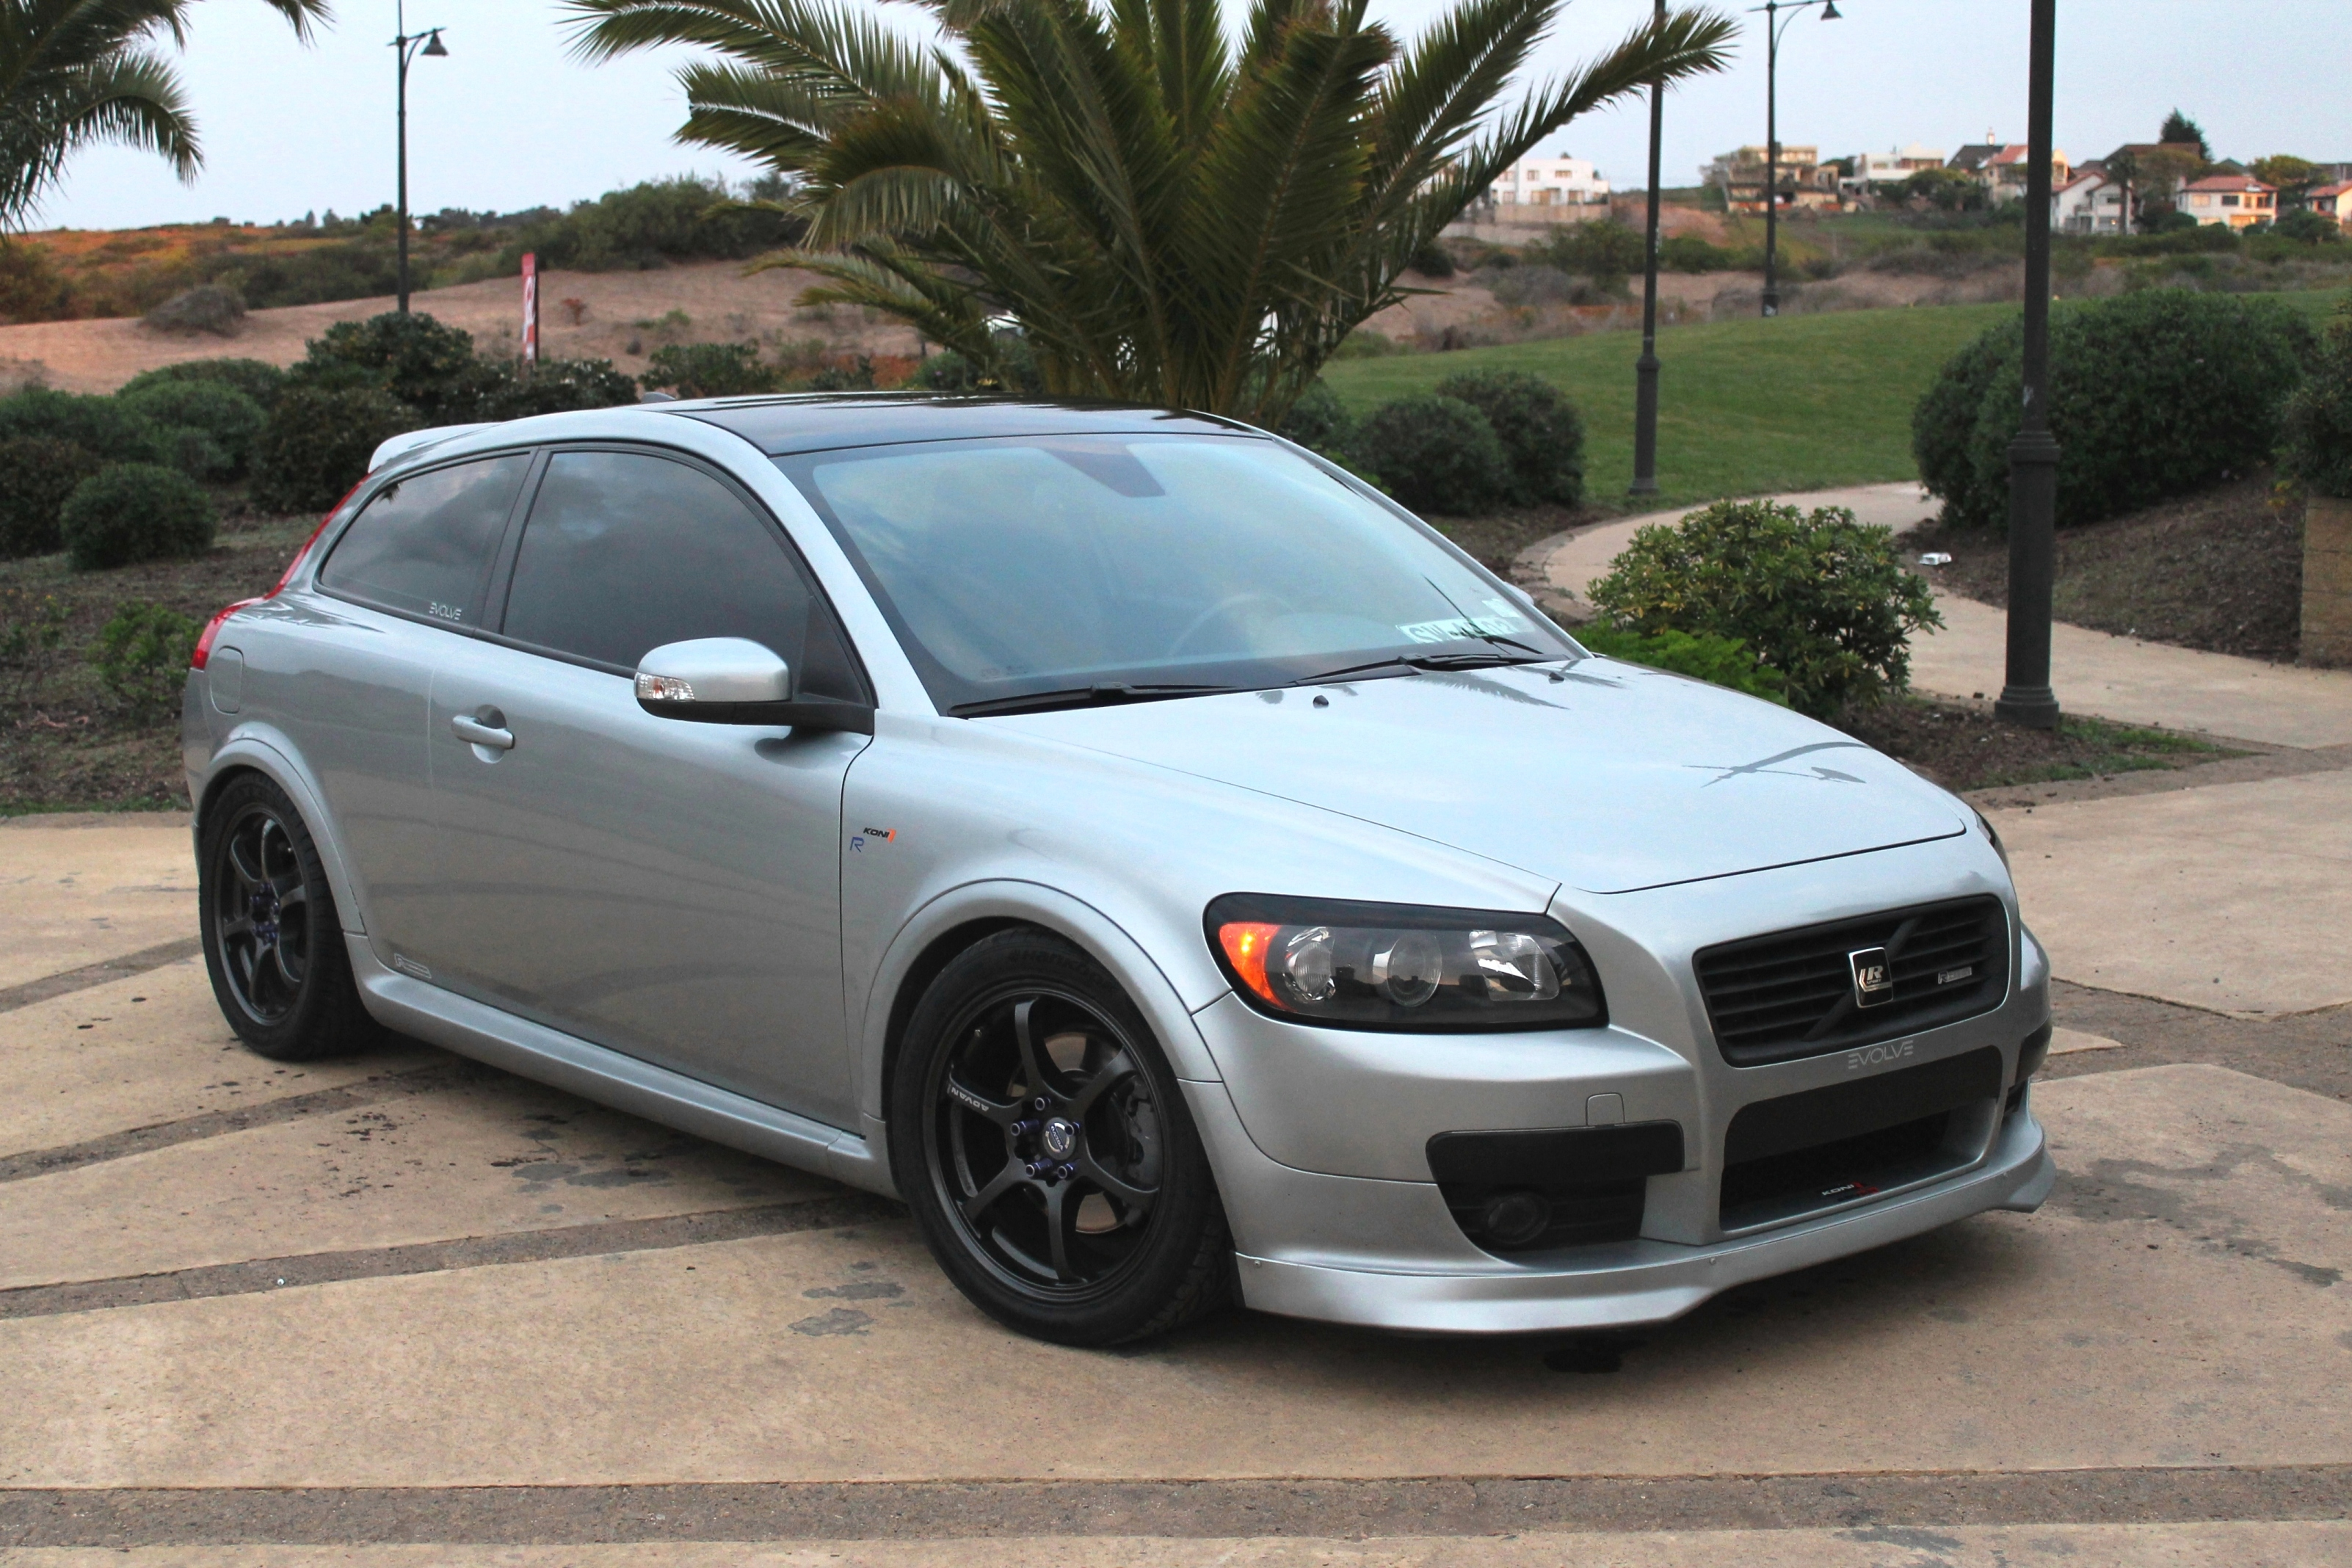 pictures-of-volvo-c30-2007-31559 Great Description About Volvo C30 R Design with Interesting Gallery Cars Review